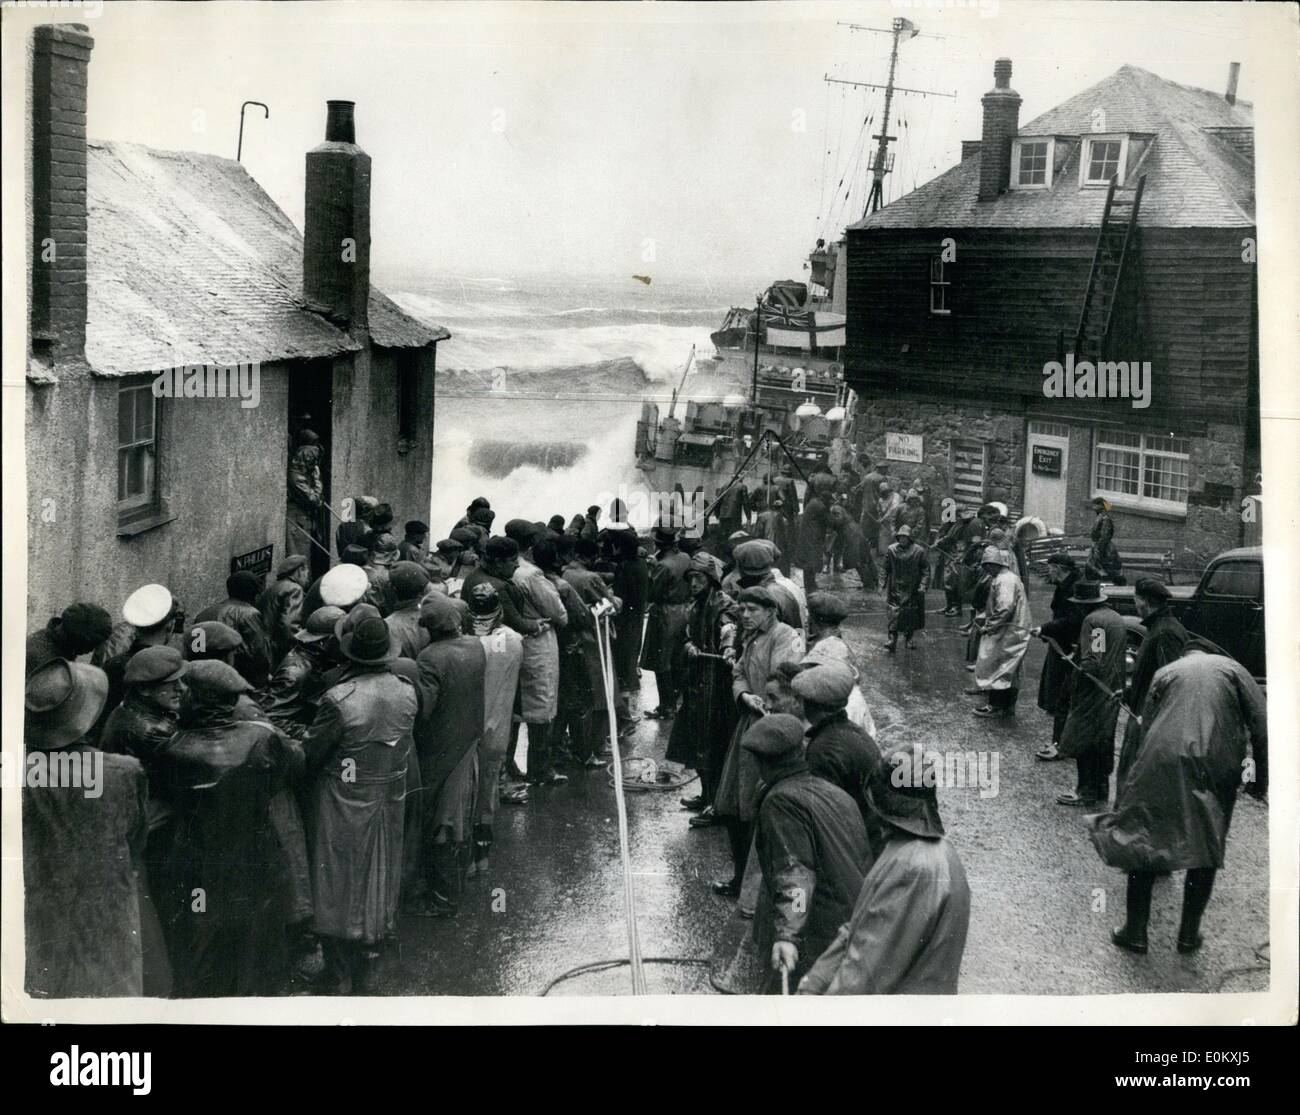 Oct. 10, 1952 - Ship On Rocks 20 Feet From Houses: Women and girls helped to rescue 62 men yesterday from 1,000-ton vesses, Wave, which was driven ashore by a gale at St. Ives, Cornwall. They hung on to the surging ropes while fishermen, policemen and shopkeepers hauled the men ashore by breeches buoy. Showers of oil from the ship swept over the quayside - and a doctor went among the drenched rescuers wiping it from their eyes. The Wave, a fishery protection vessel was driven on to the rocks only 20 feet from houses in the town - Stock Image